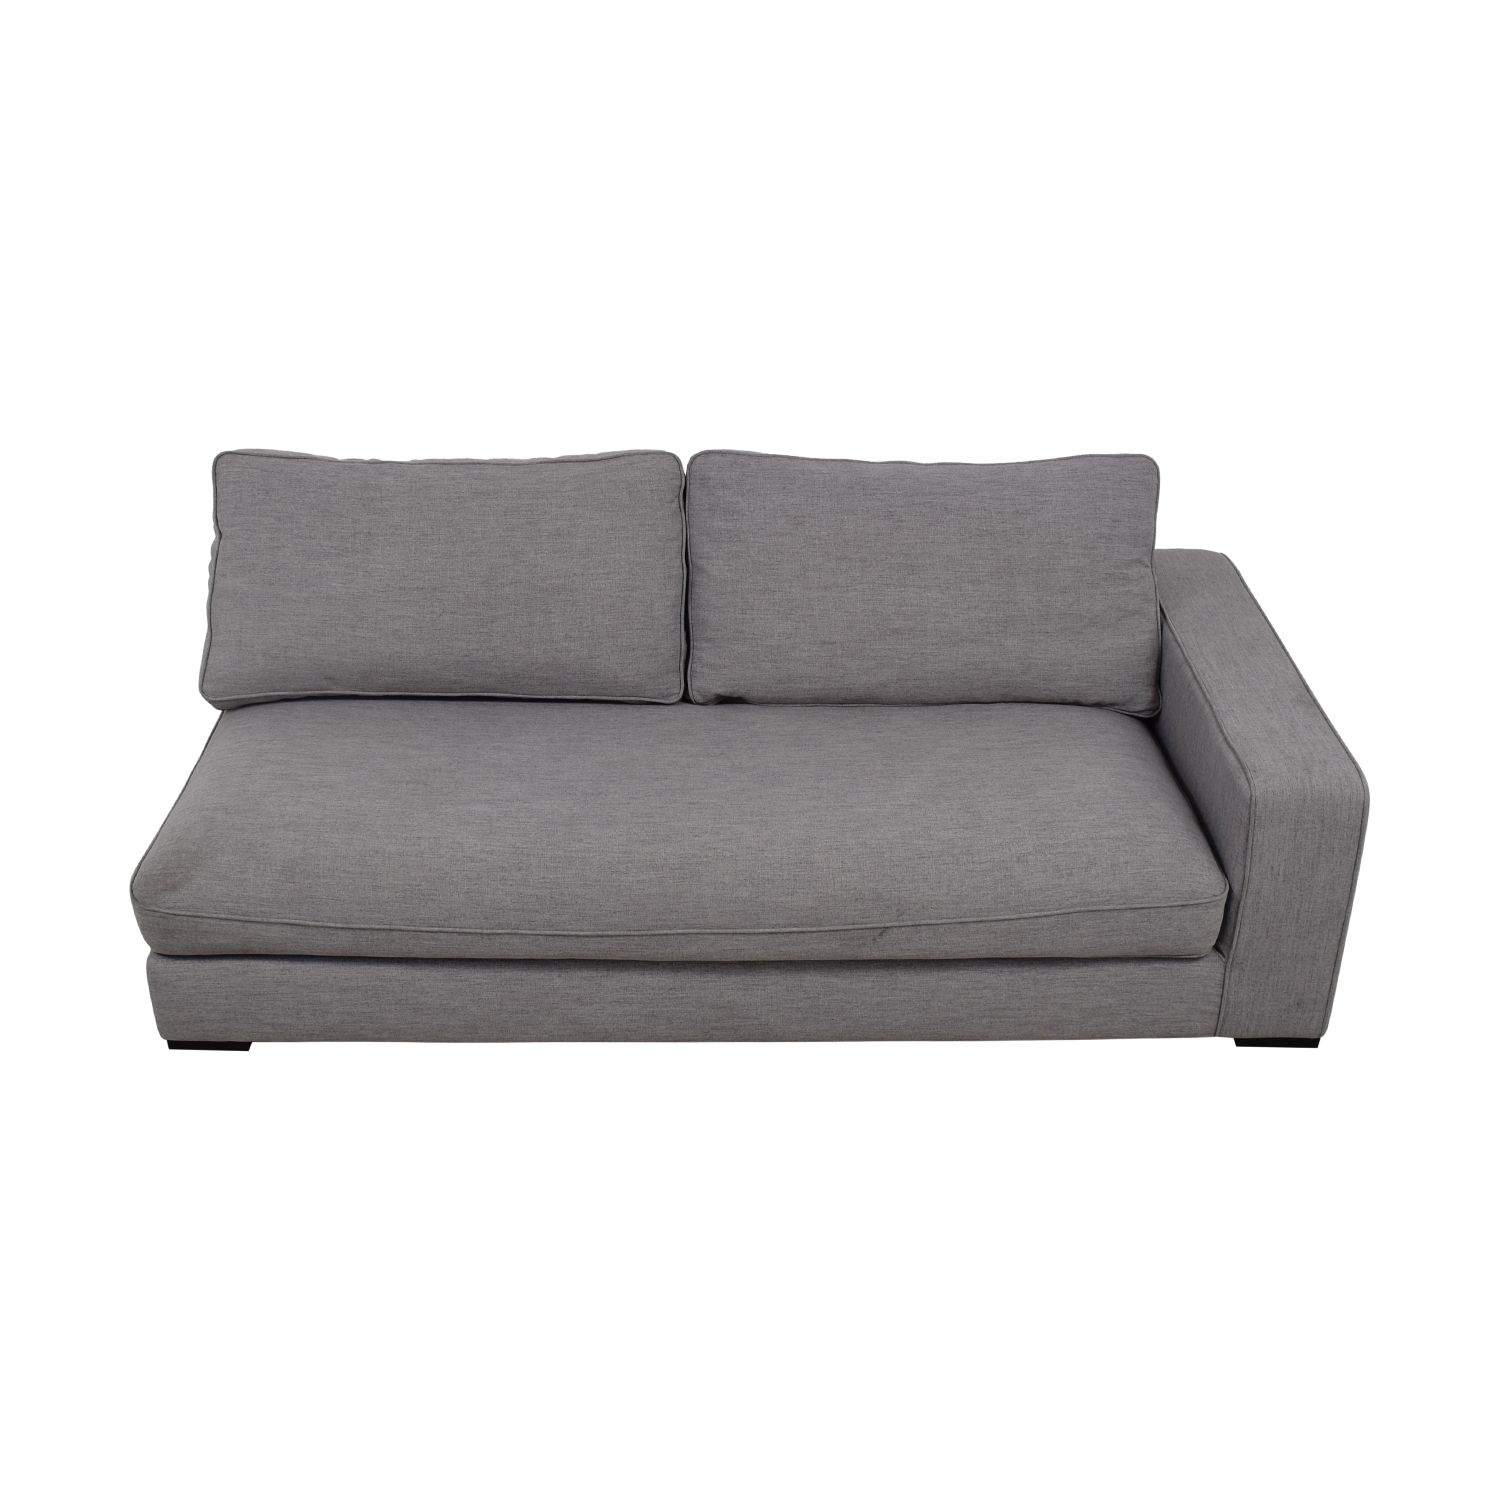 Ainsley Grey Left Arm Chaise discount